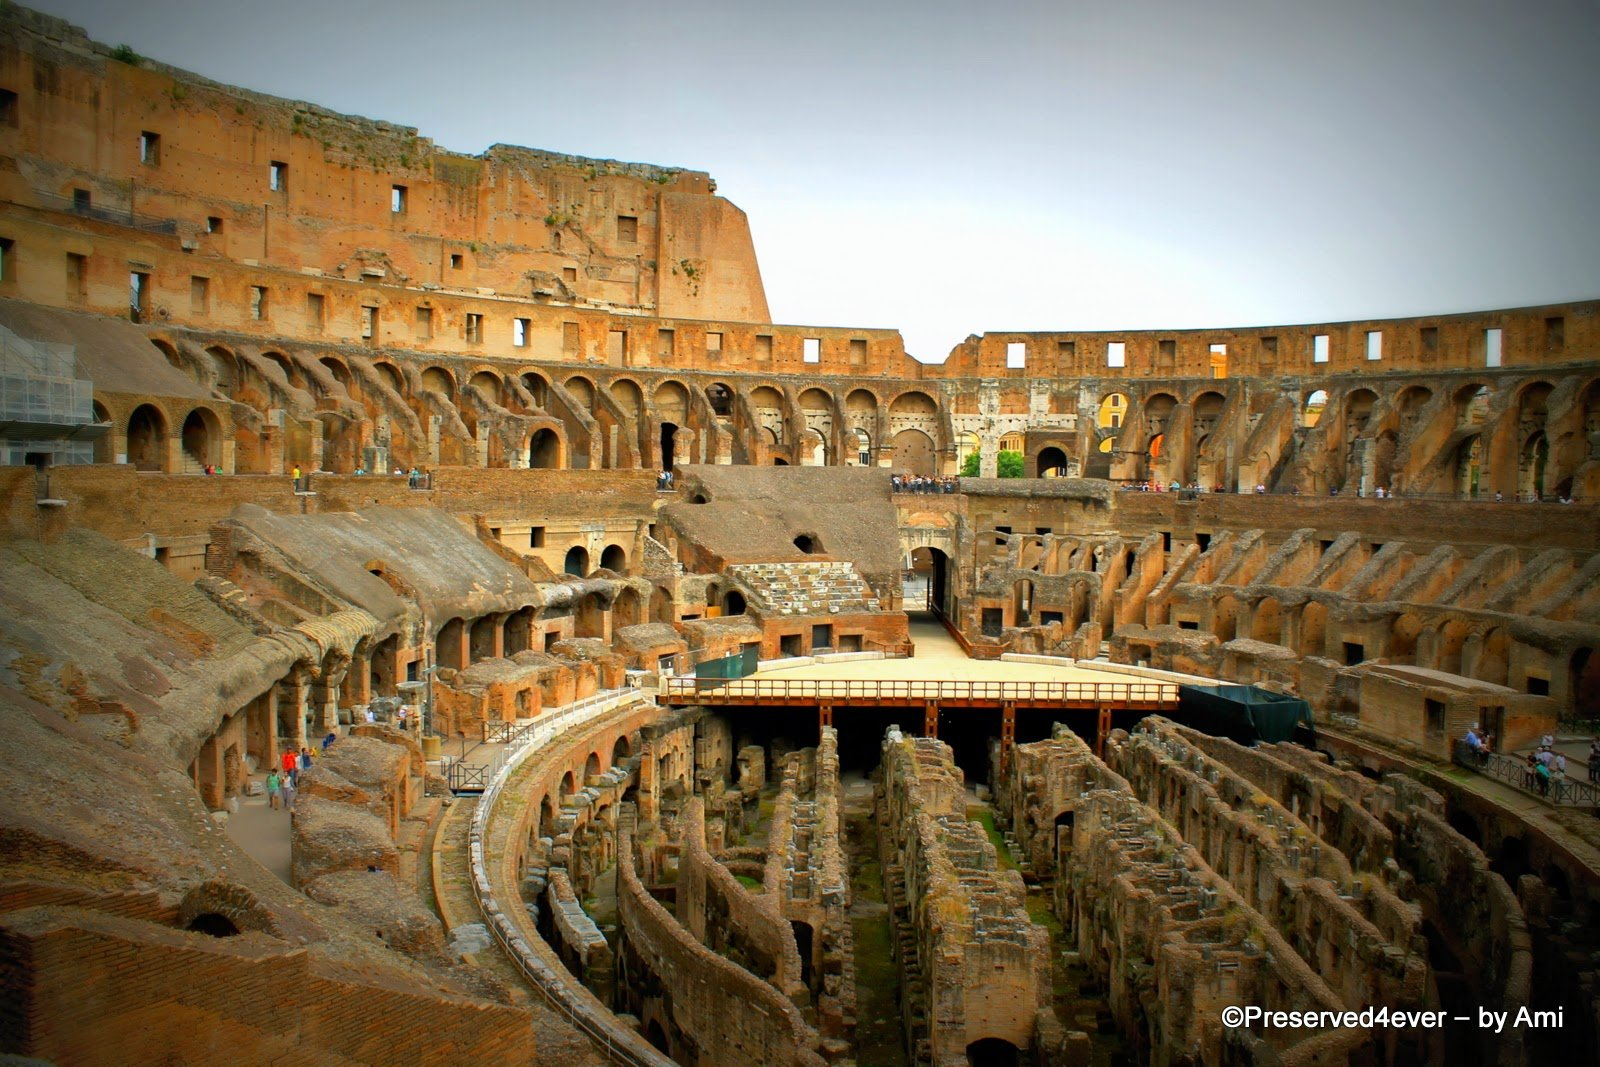 View from level One of the Colosseum